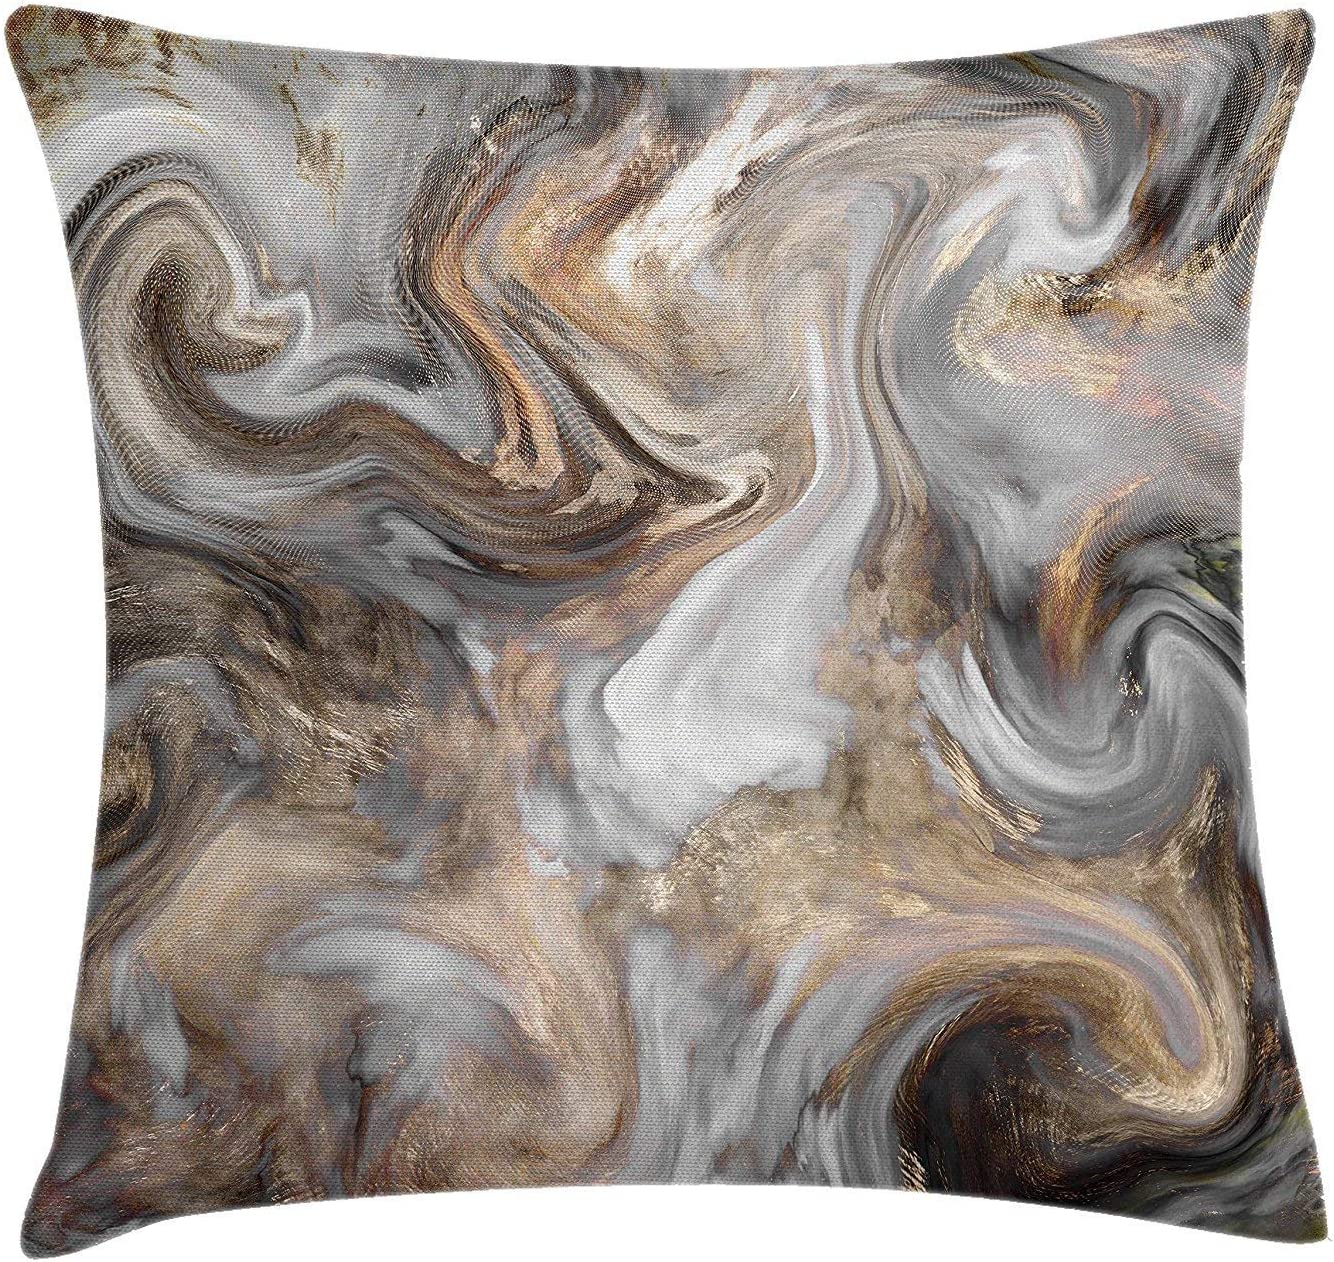 Asefcnxkjii Marble Throw Pillow Cushion Cover, Retro Style Paintbrush Colors in Marbling Texture Watercolor Artwork, Decorative Square Accent Pillow Case, 18 X 18 Inches, Sand Brown Dust Light Grey